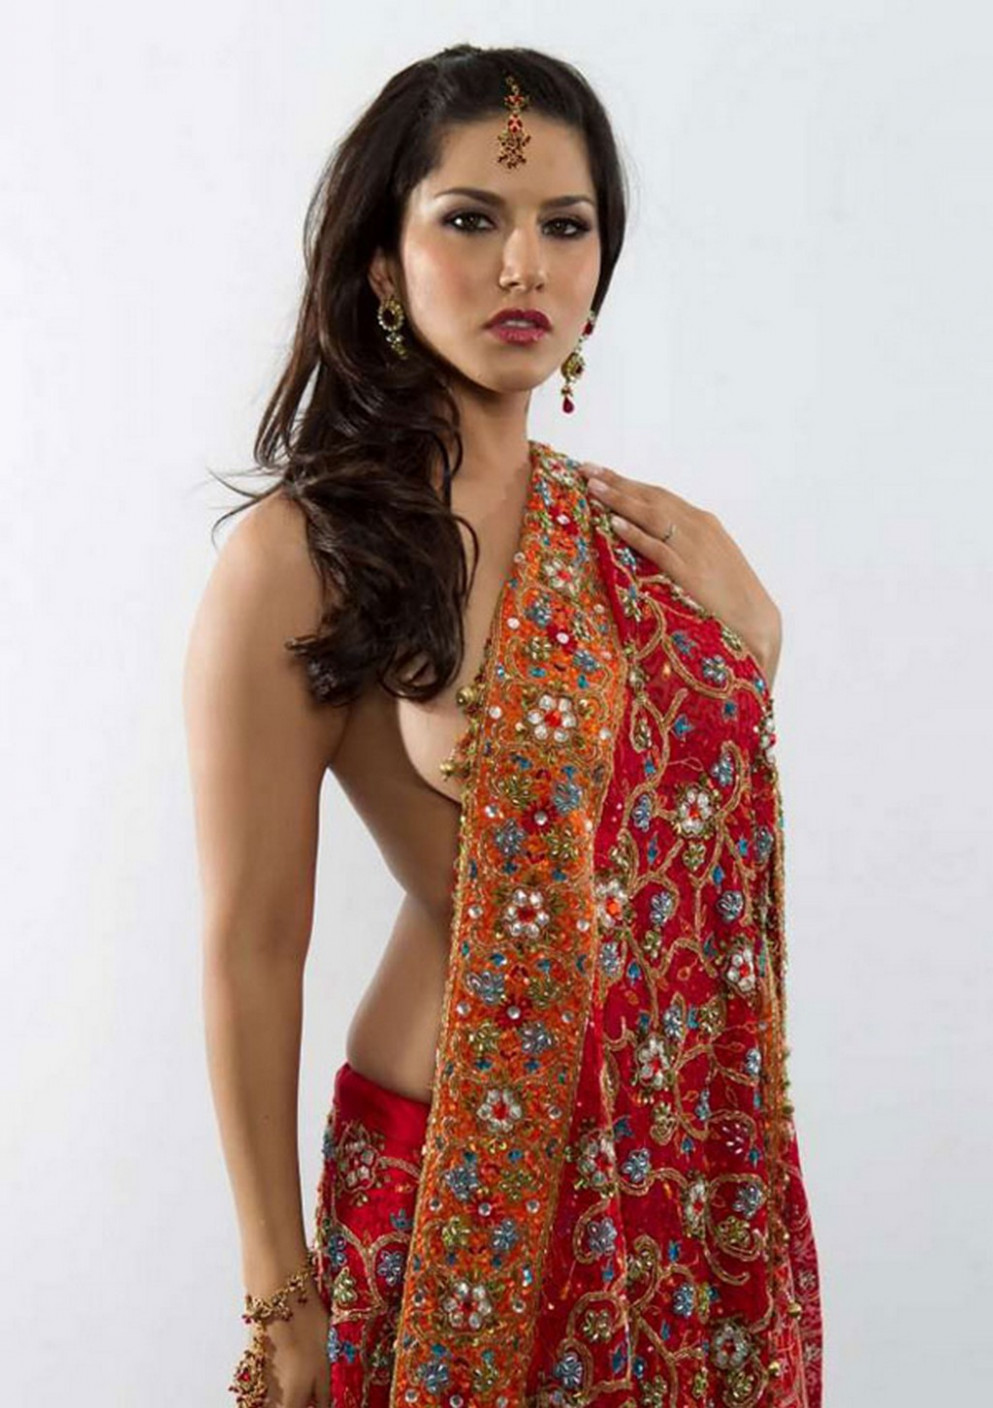 SUNNY LEONE IN RED SAREE HOT PHOTOSHOOT - BOLLYWOOD CHUCHPA